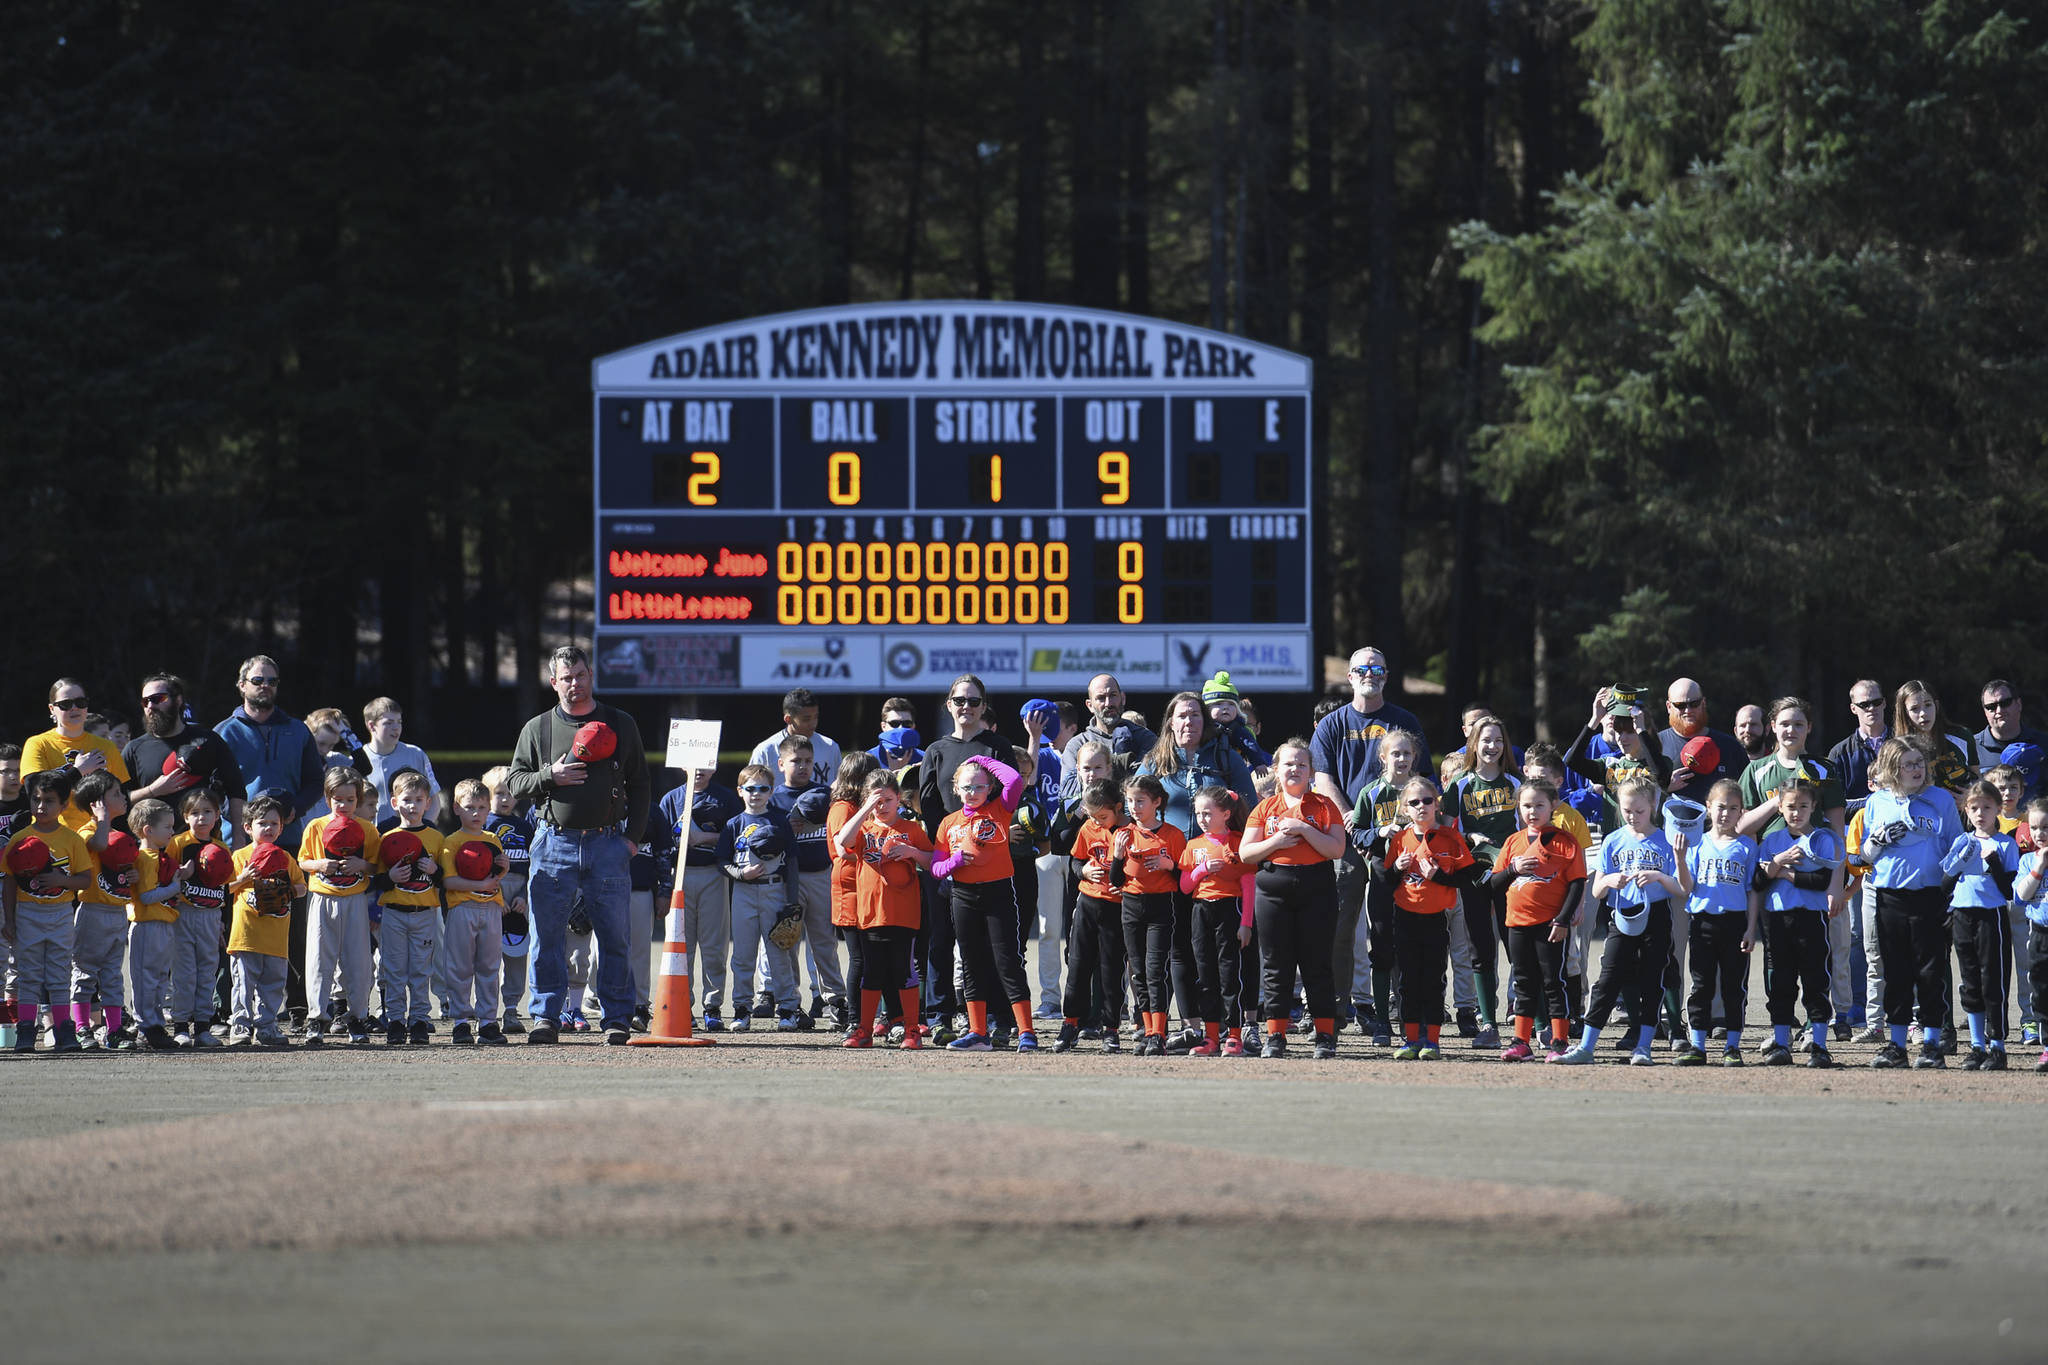 Gastineau Channel Little League Opening Day Ceremonies at Adair-Kennedy Memorial Park on Saturday, April 27, 2019. (Michael Penn | Juneau Empire)